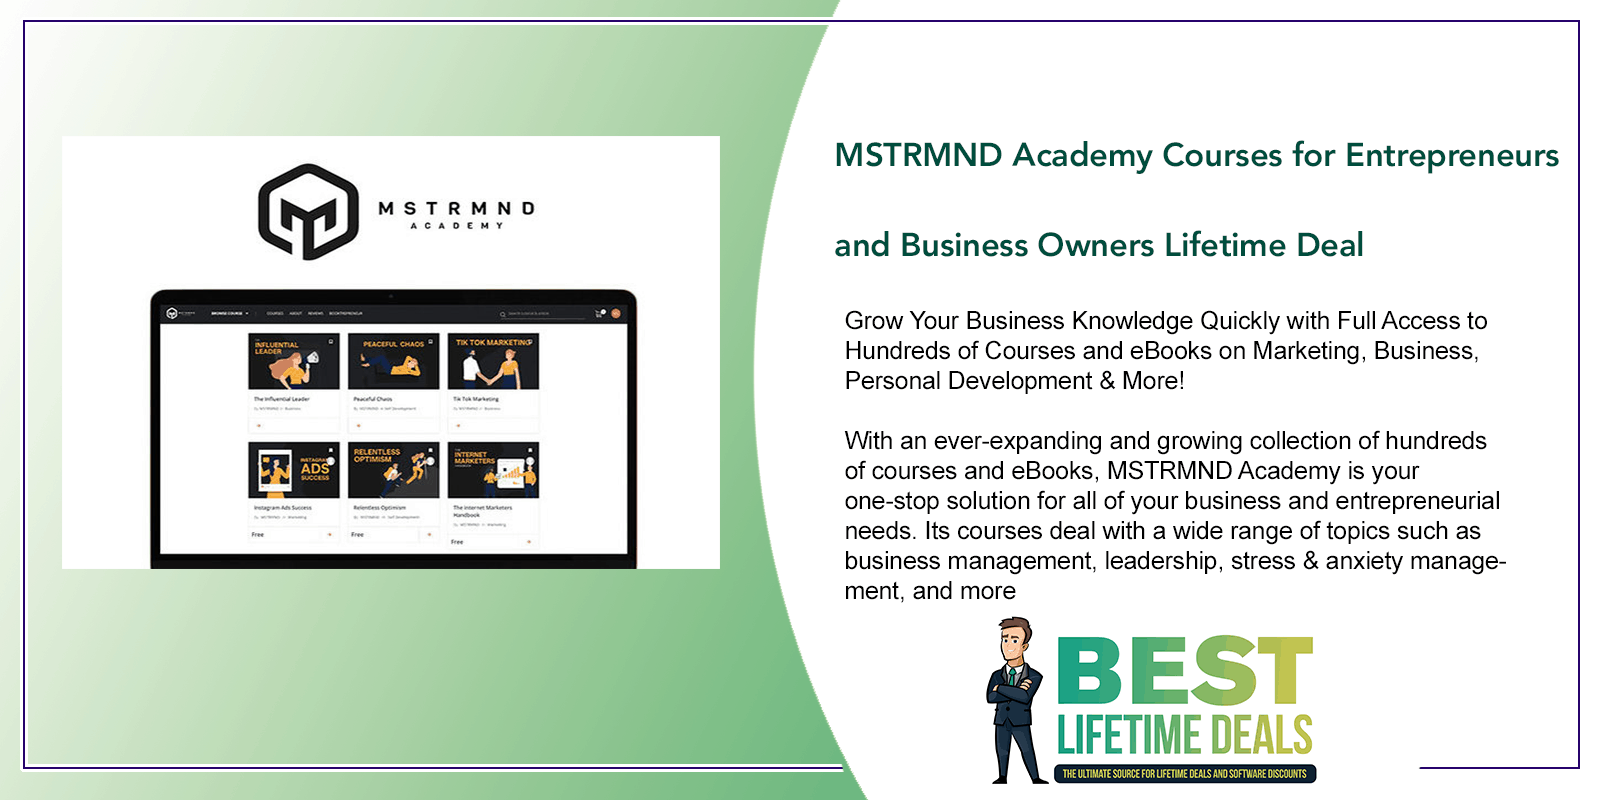 MSTRMND Academy Courses for Entrepreneurs Featured Image